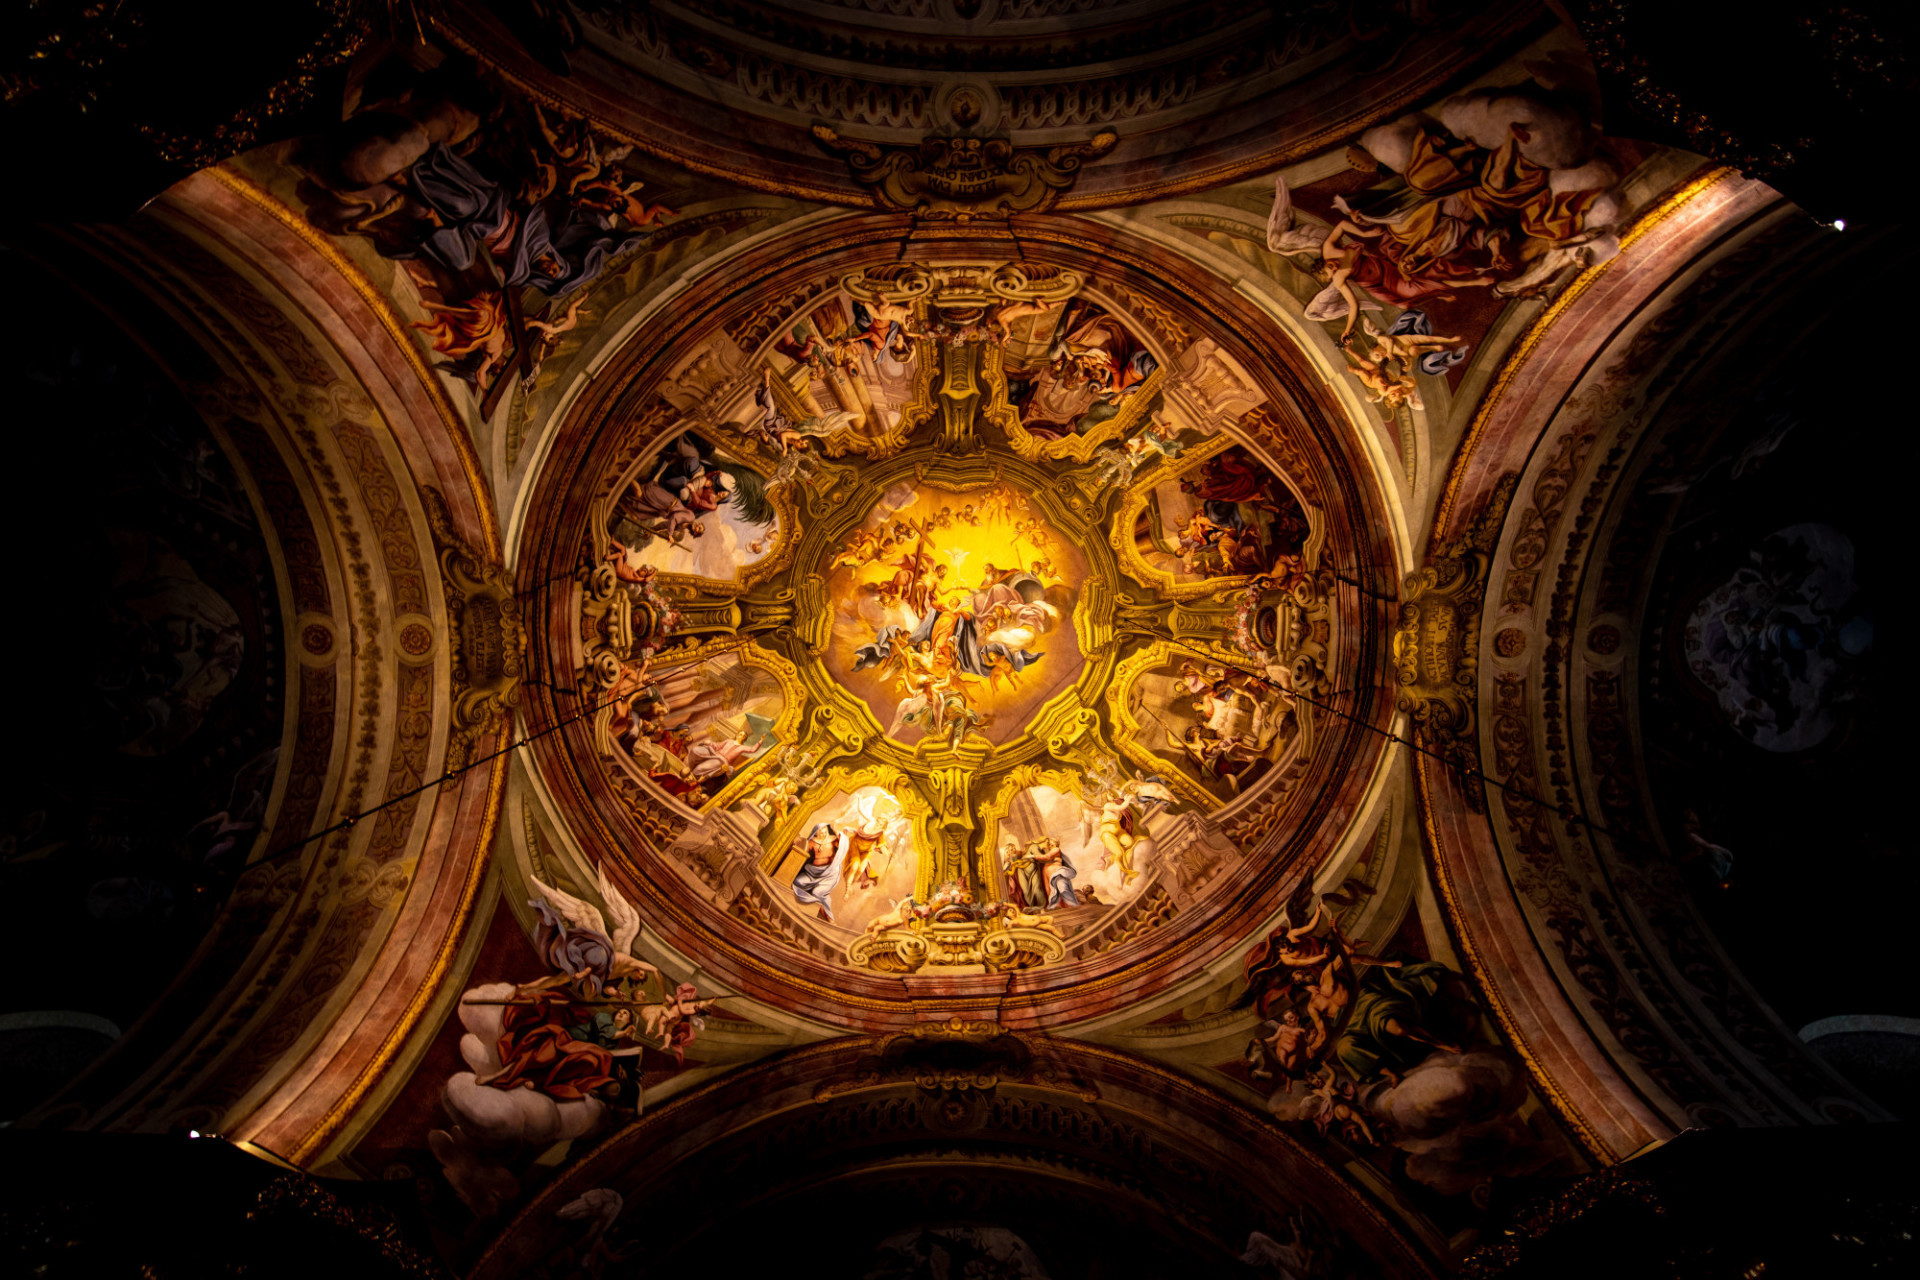 Ceiling painting in a church